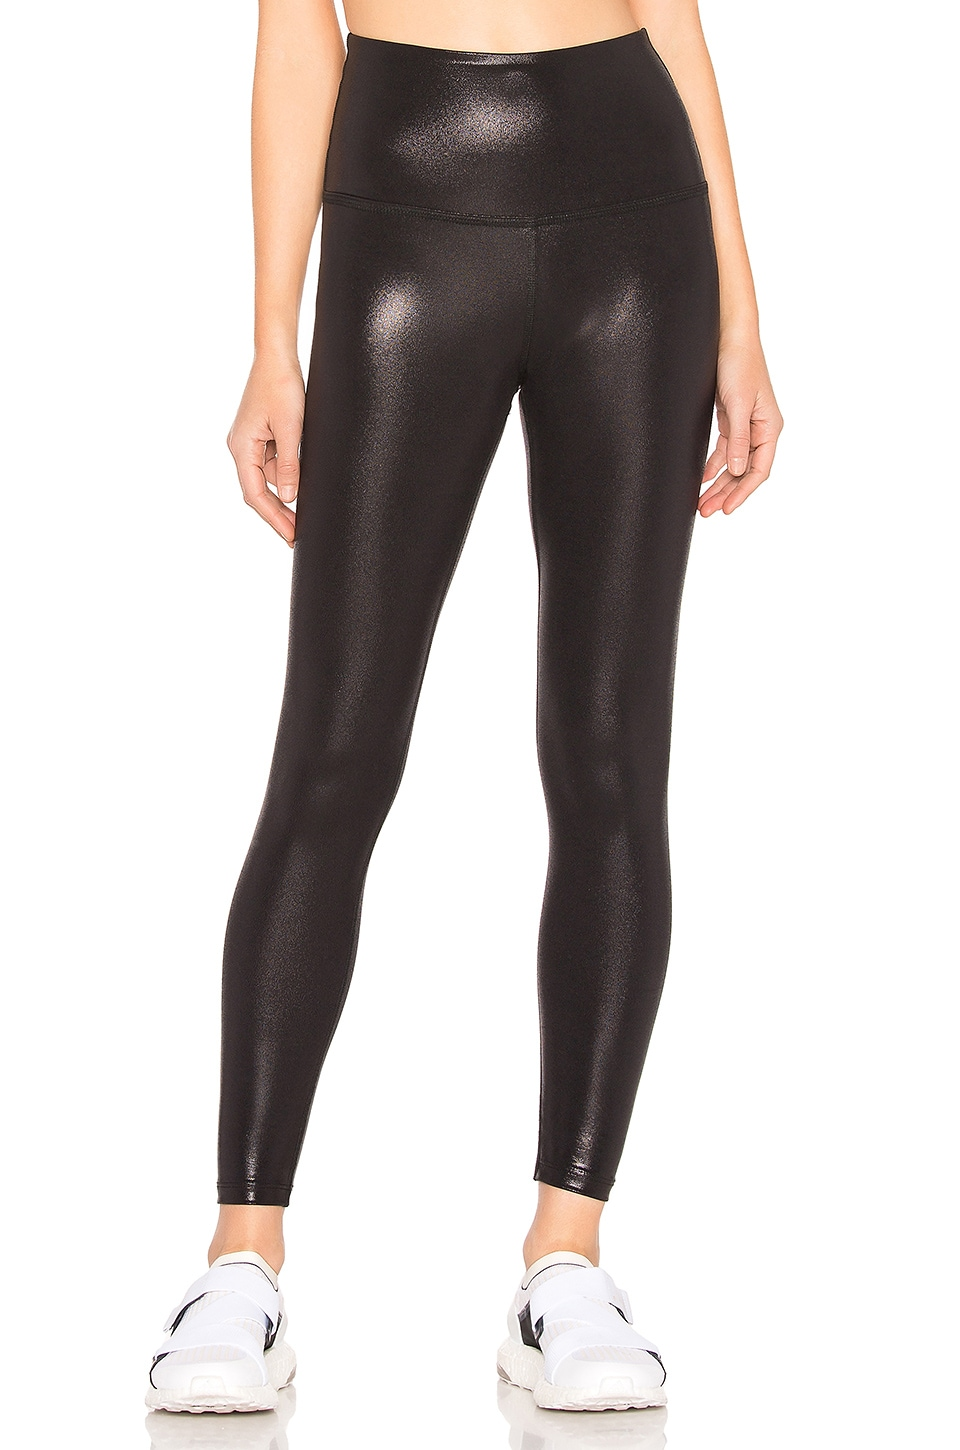 Beyond Yoga Pearlized High Waisted Midi Legging in Black